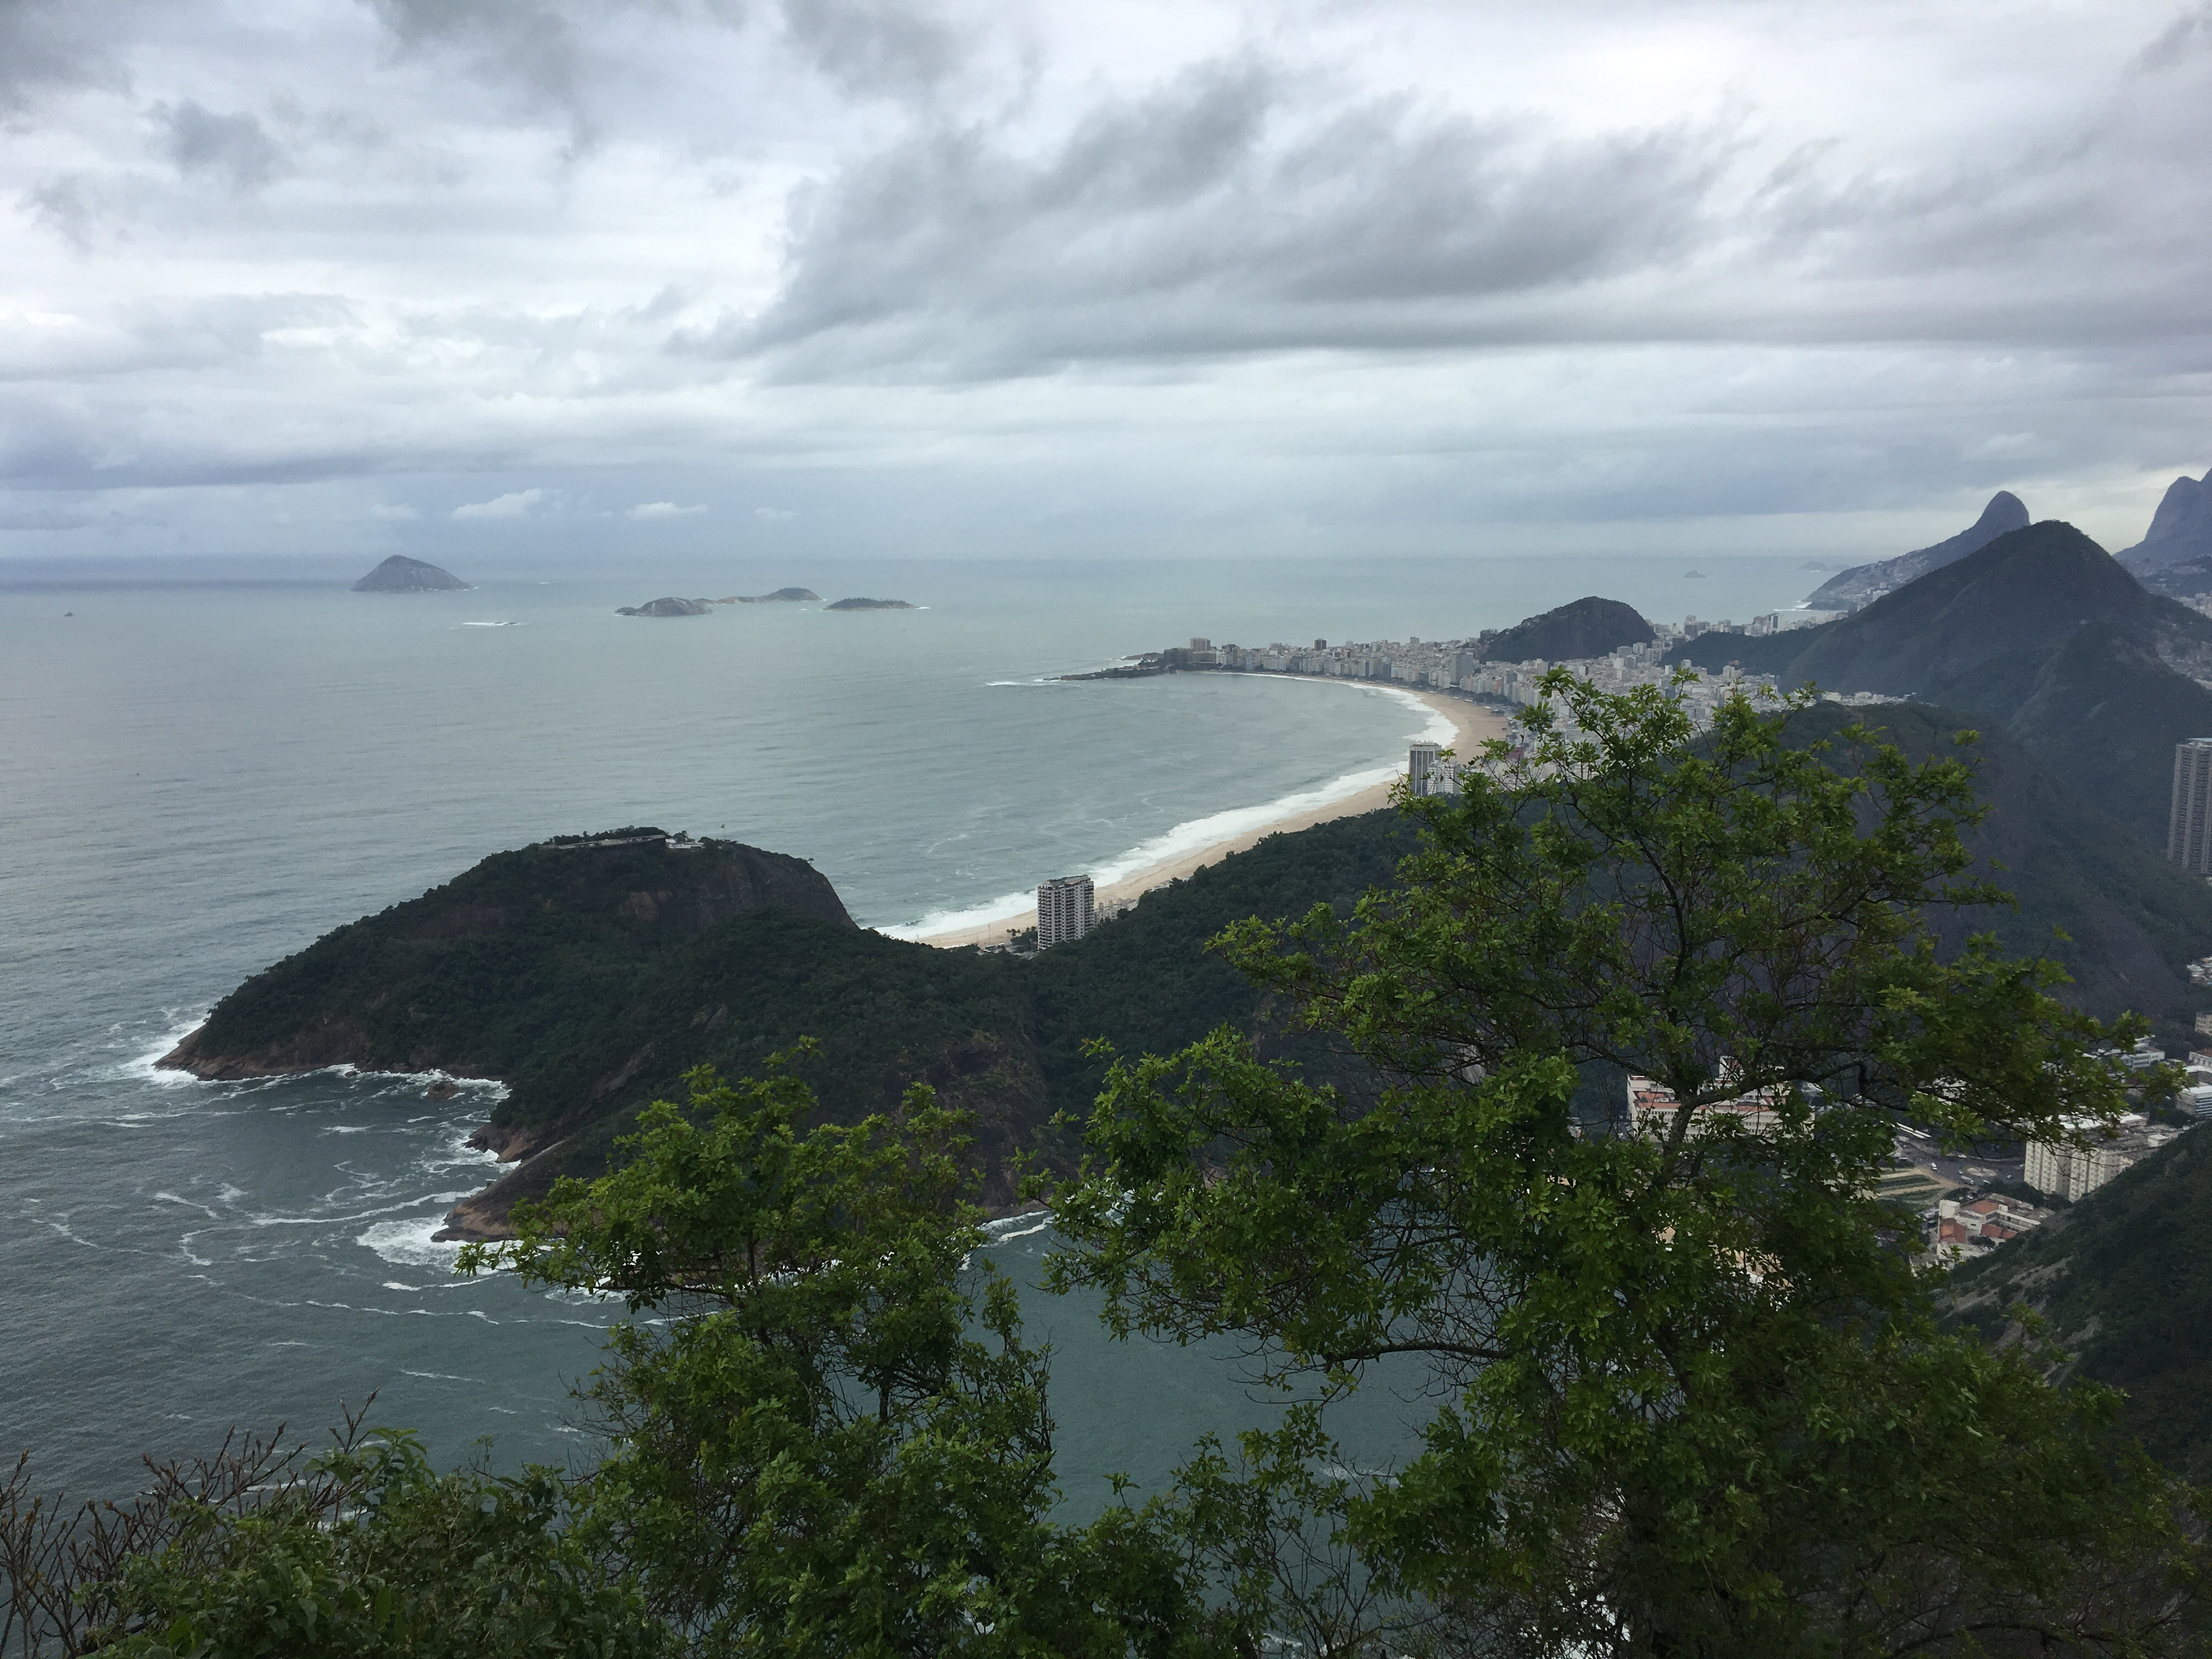 The Copacabana beach, as seen from the Sugarloaf.